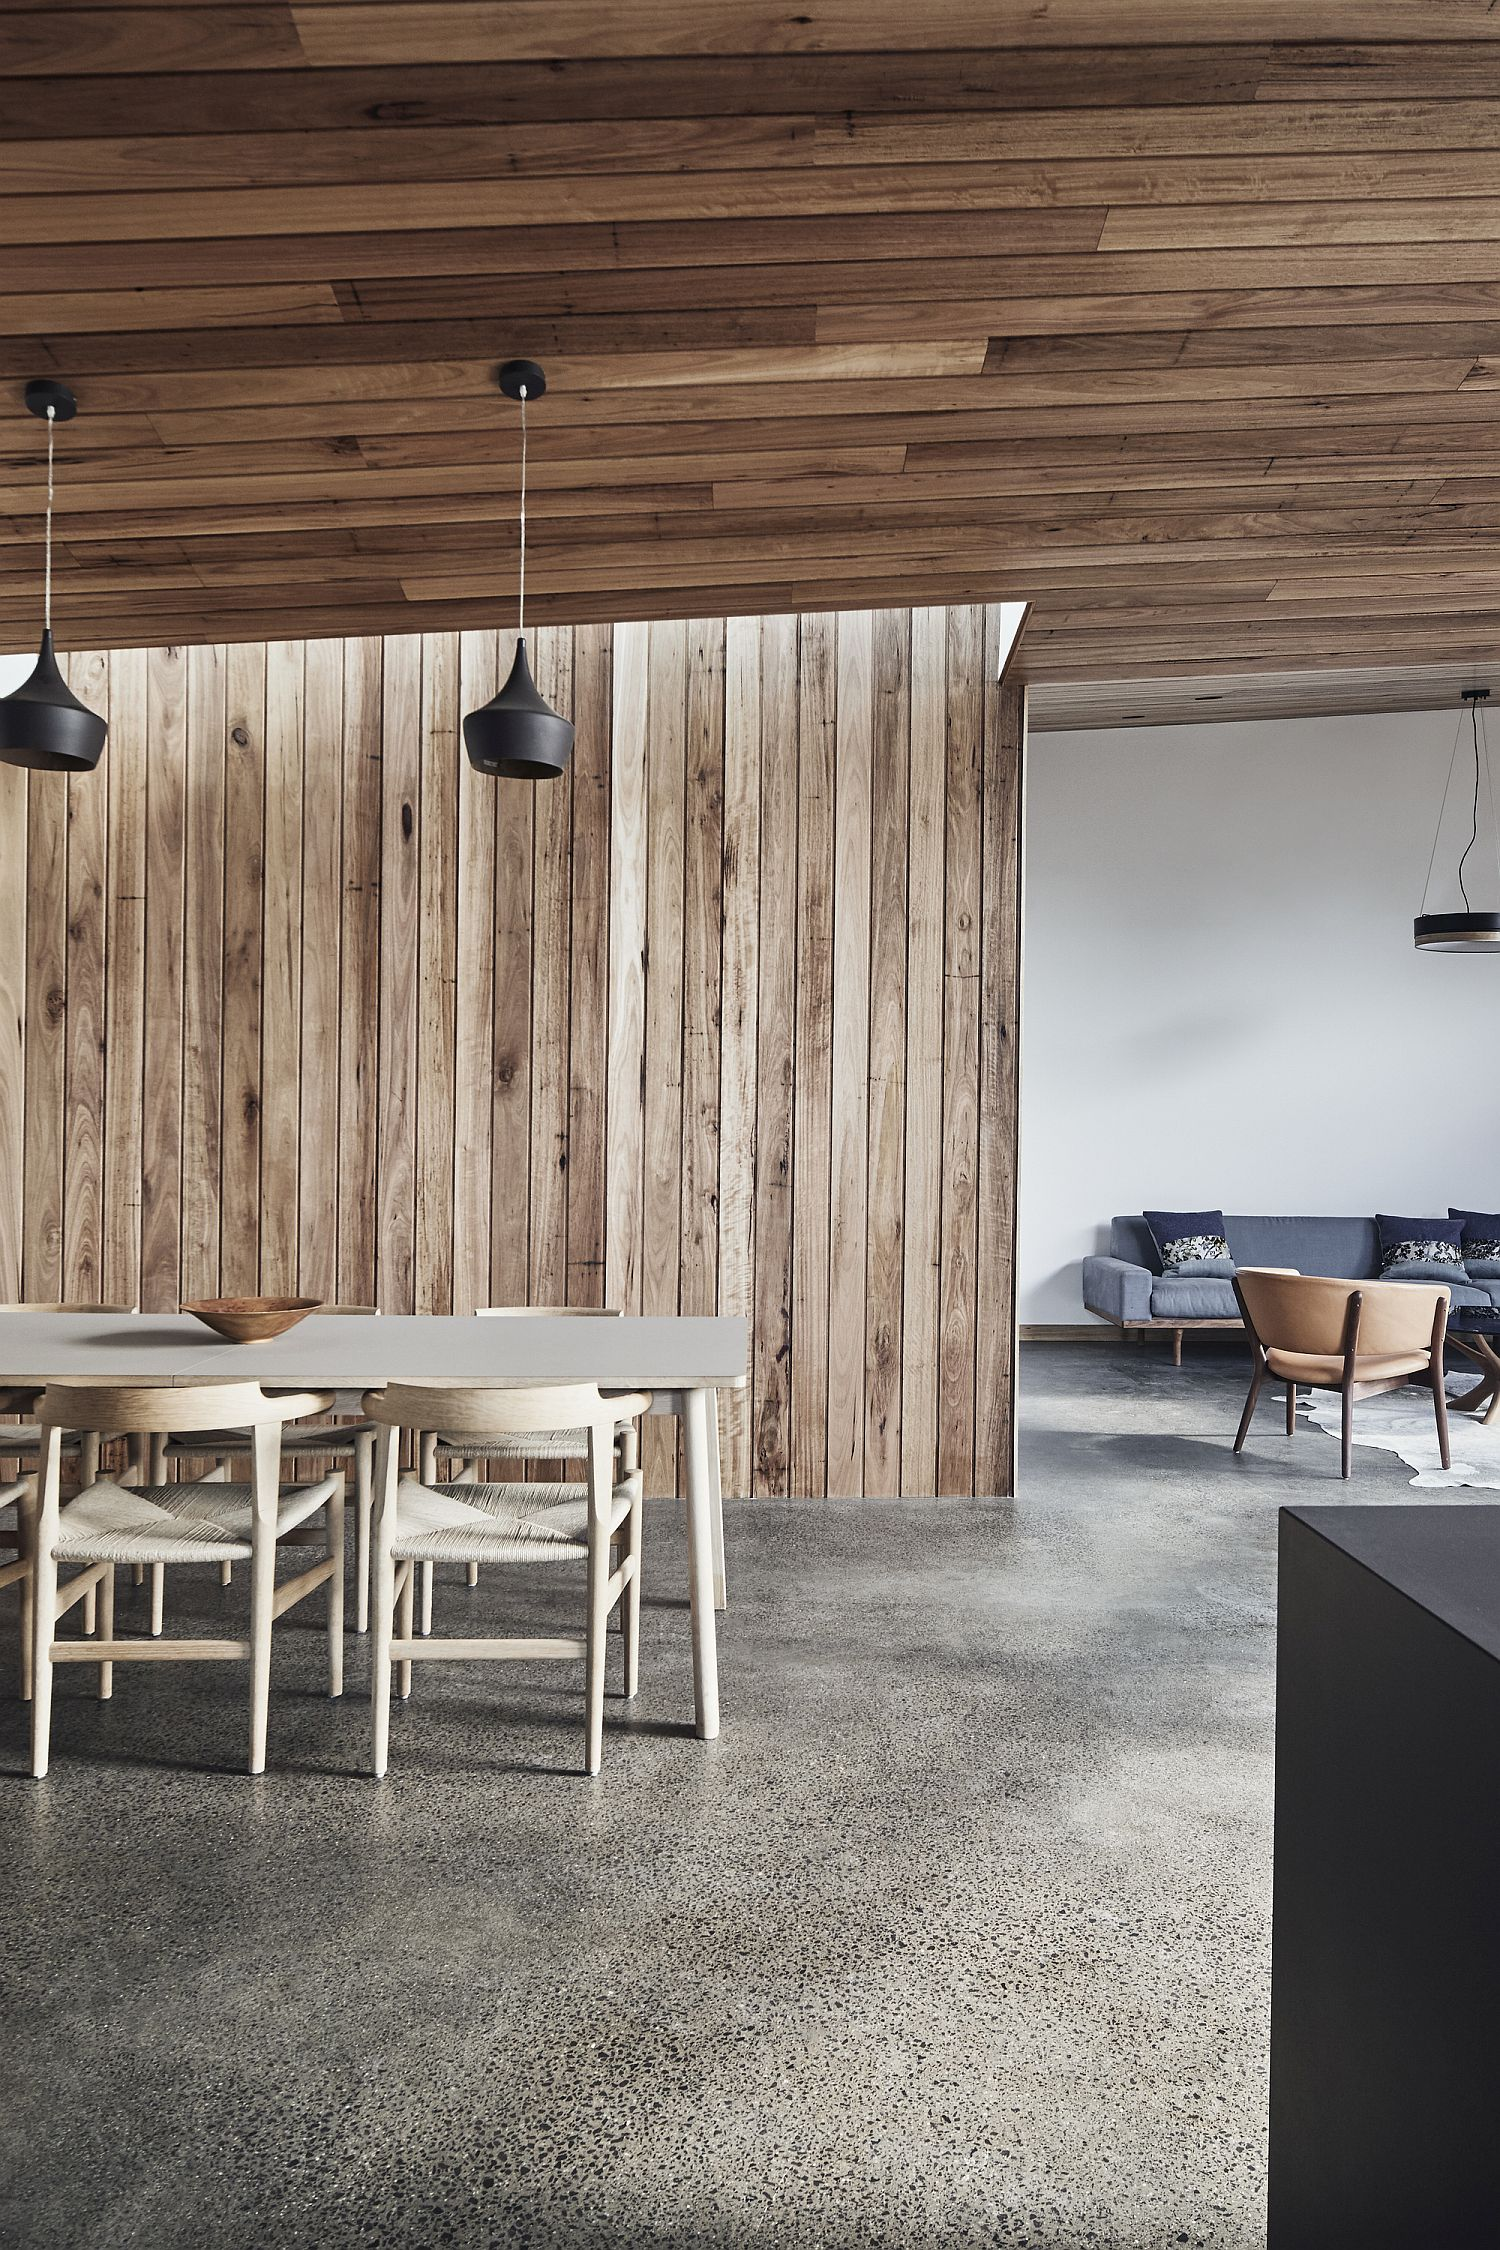 Floor and ceiling offer visual contrast to the interior